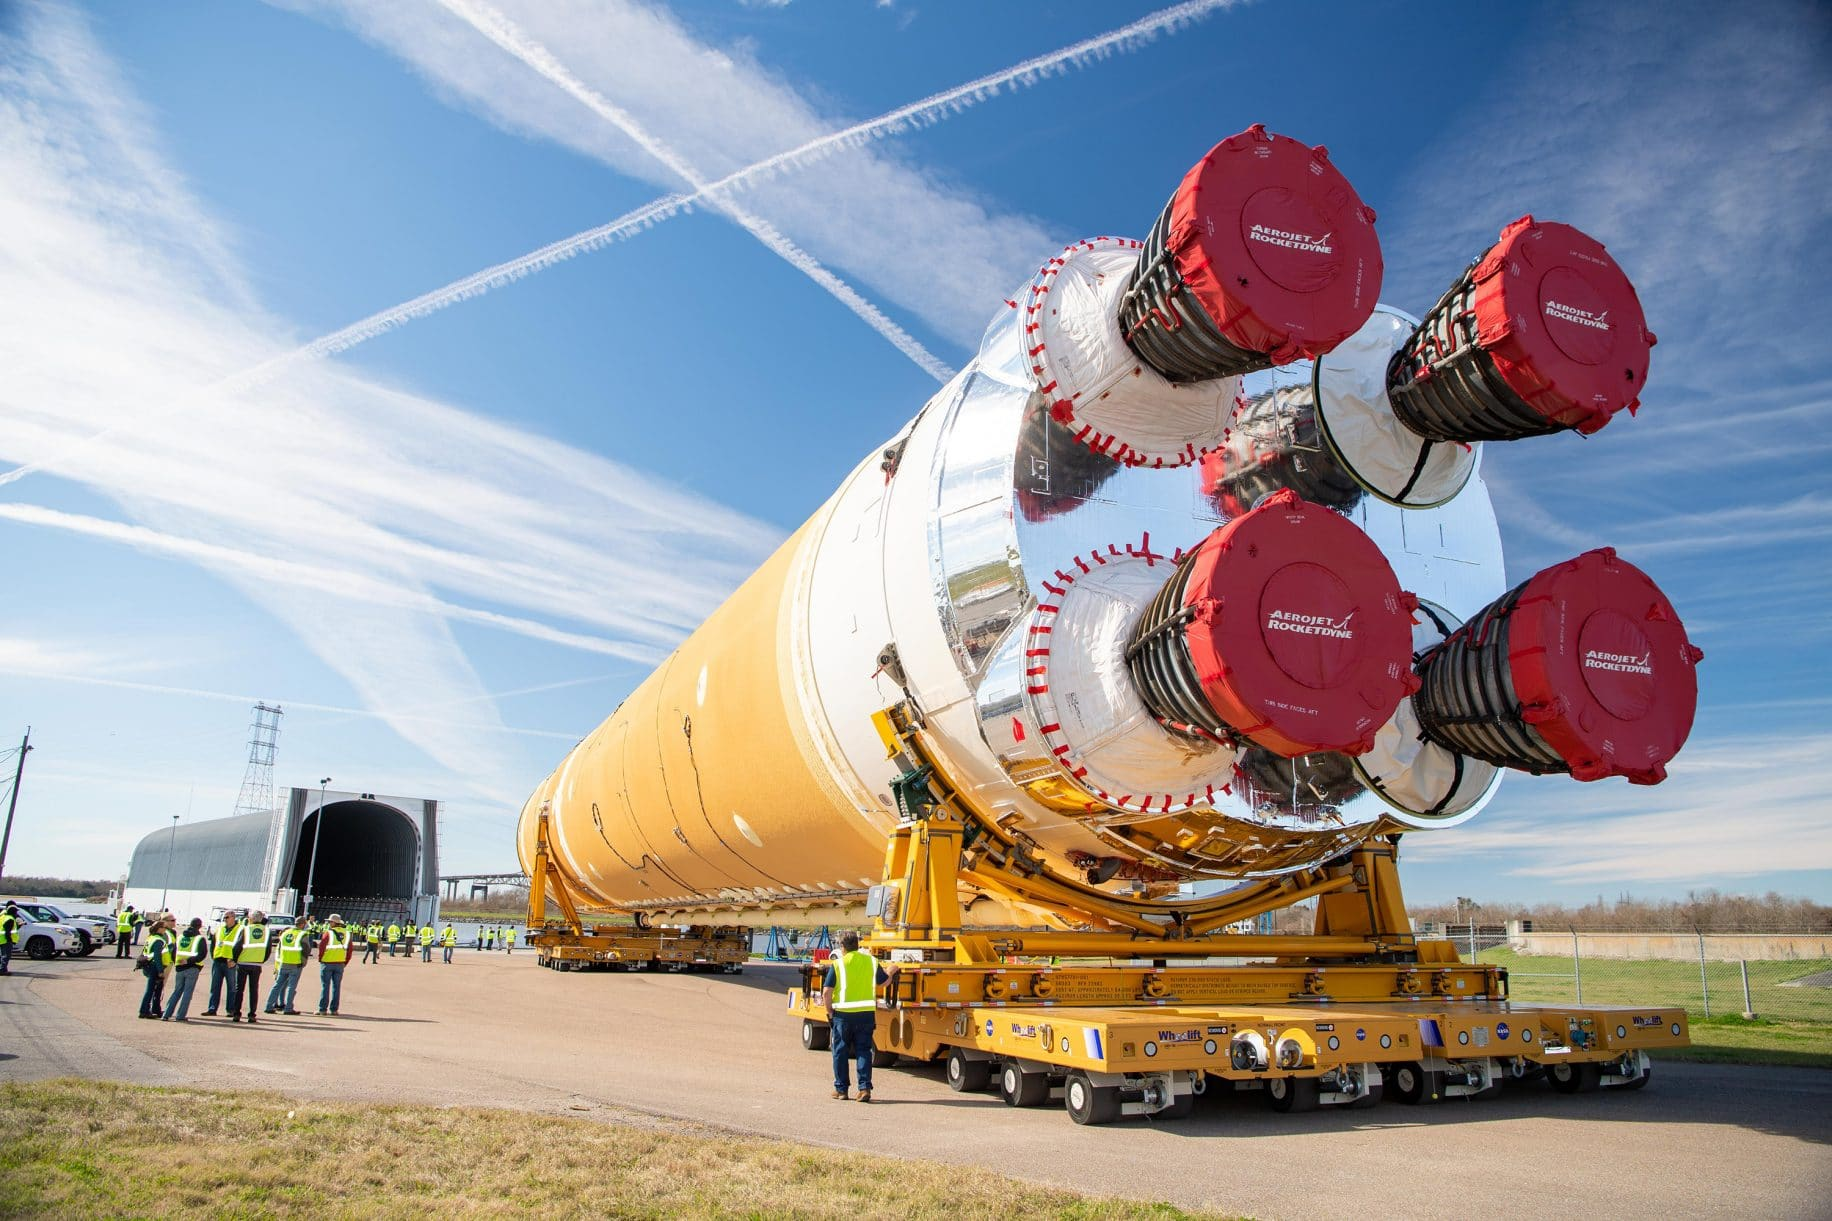 NASA just got its best budget in a decade | The Planetary